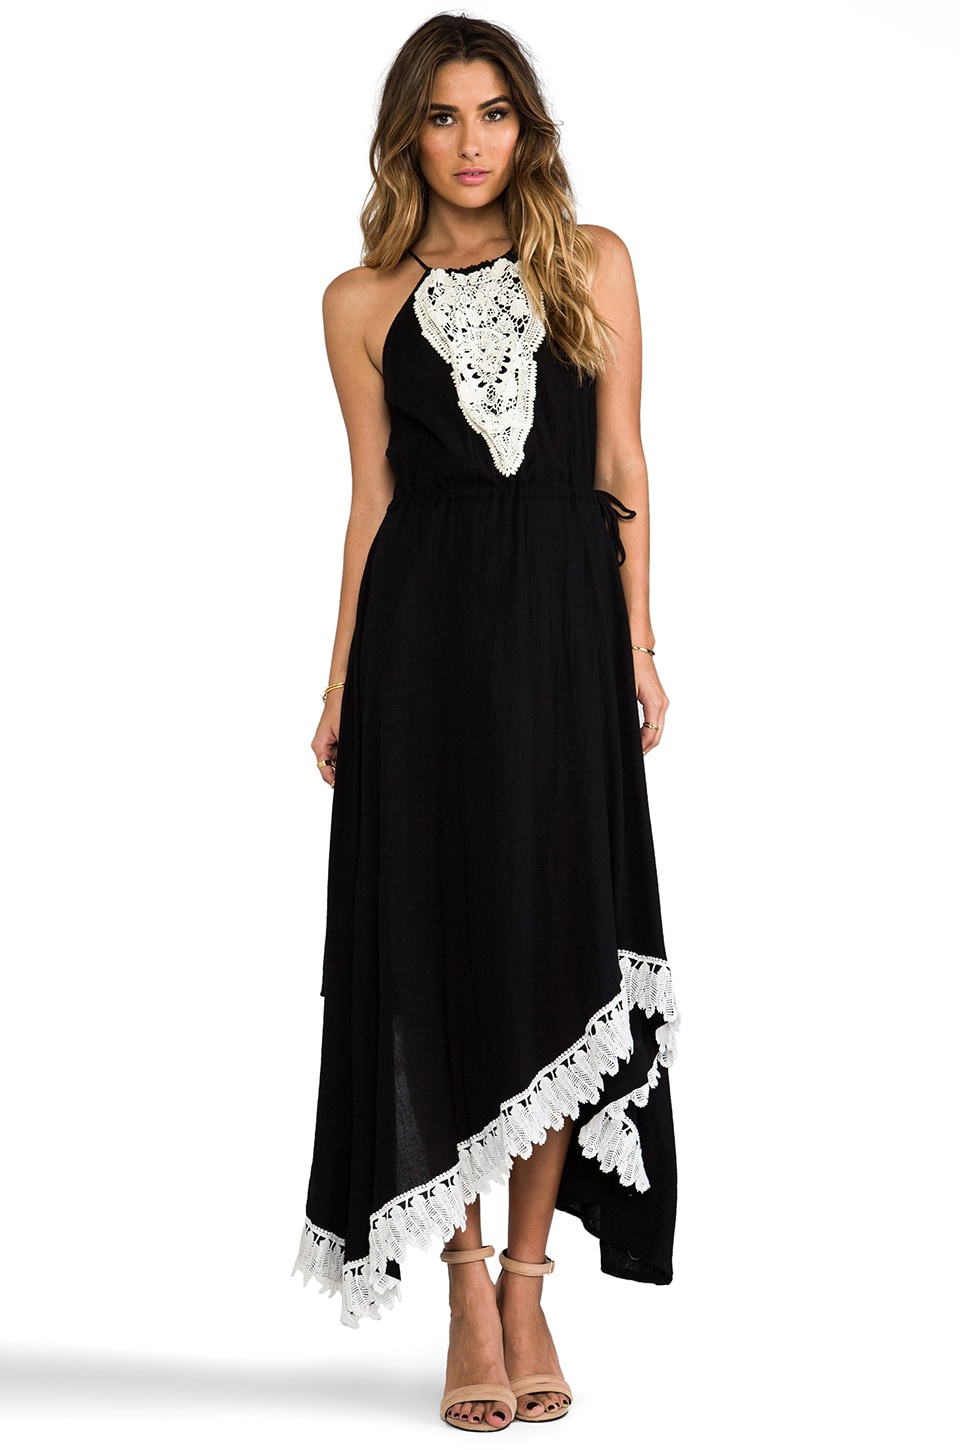 T-Bags LosAngeles Embroidered Maxi Dress in Black